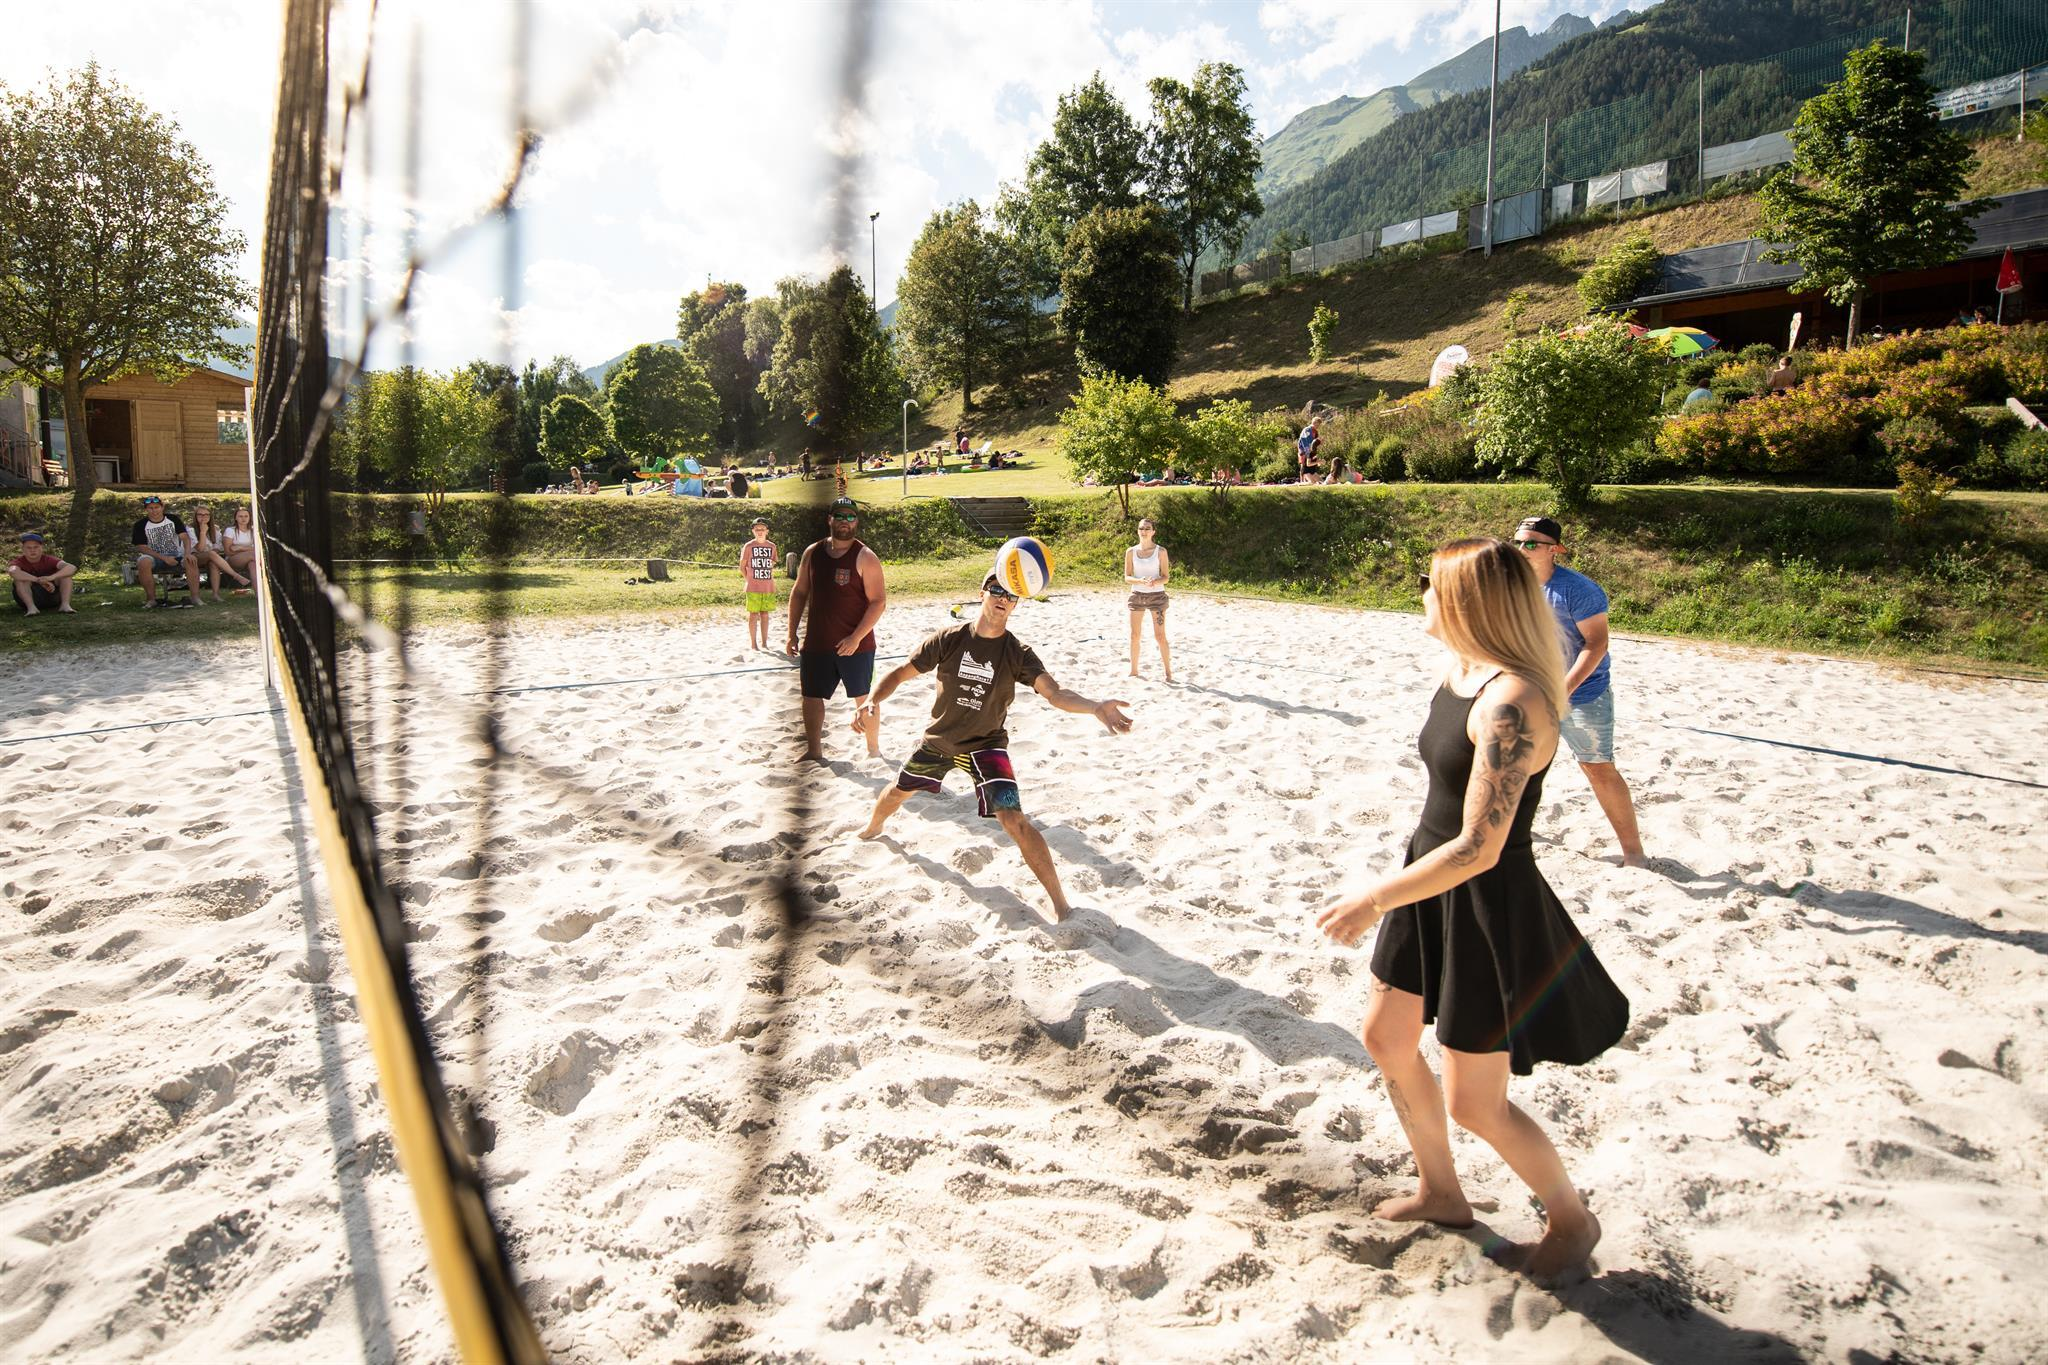 Beach-Volleyballplatz.jpg